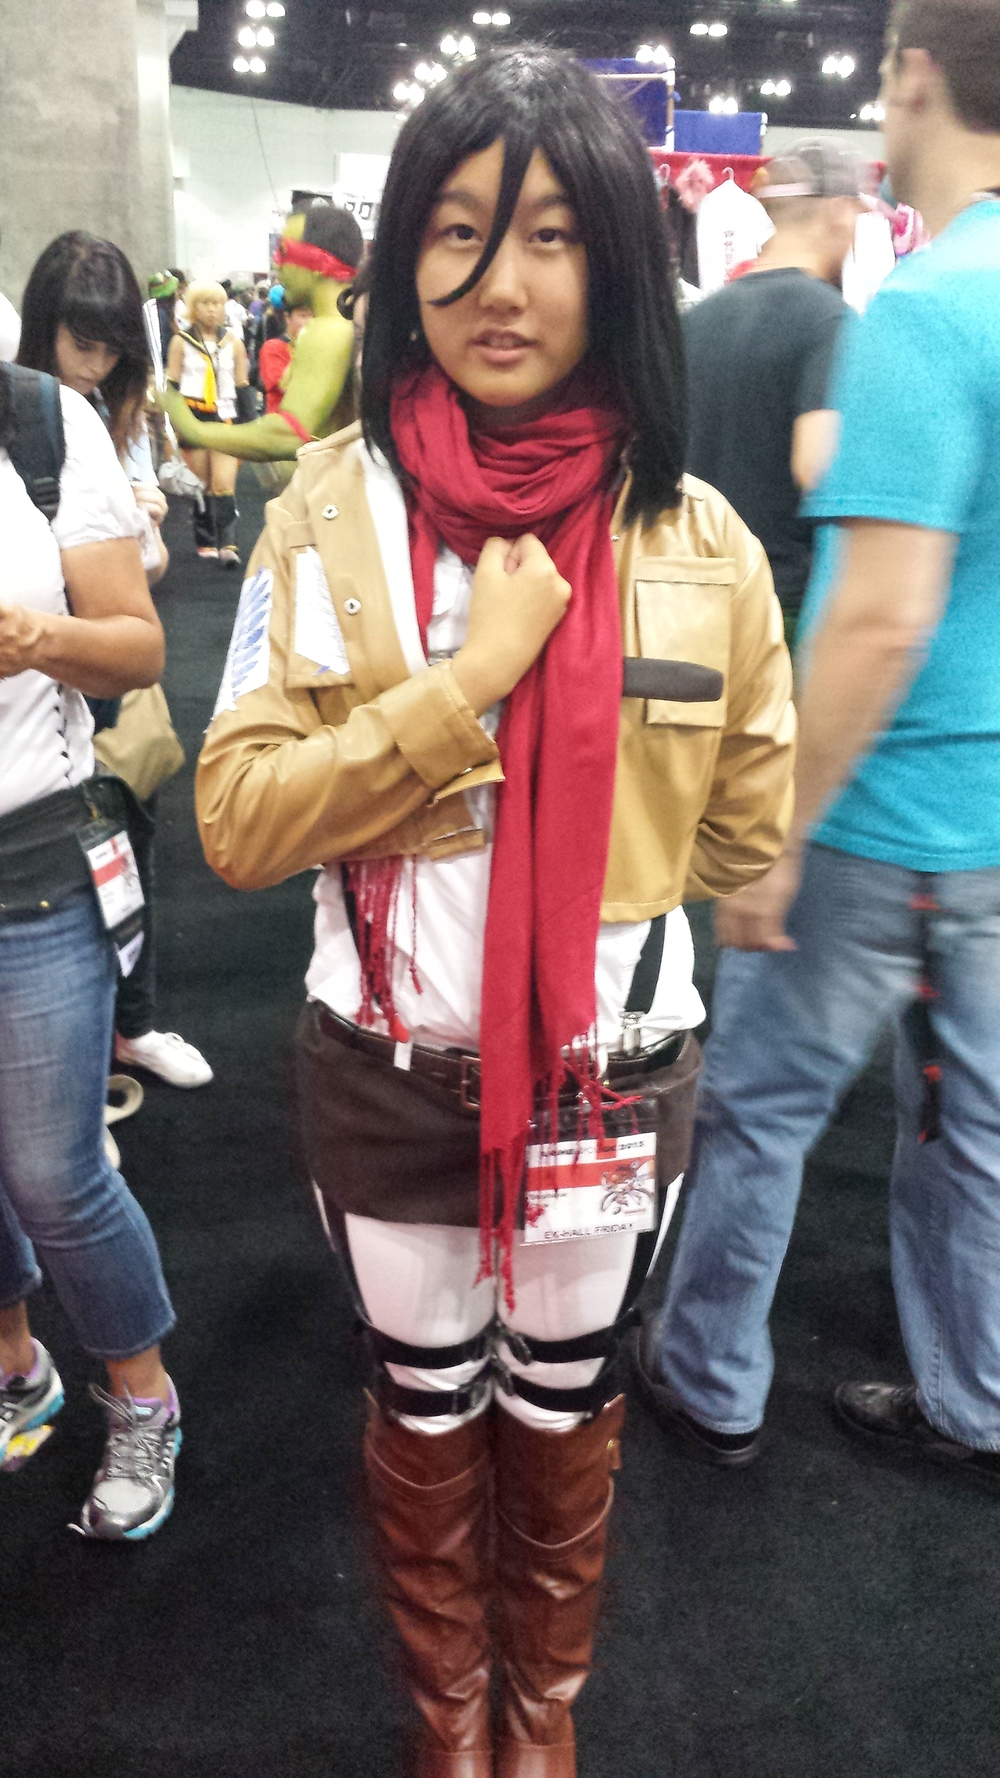 AnimeExpo 2013 - Mikasa ready for action